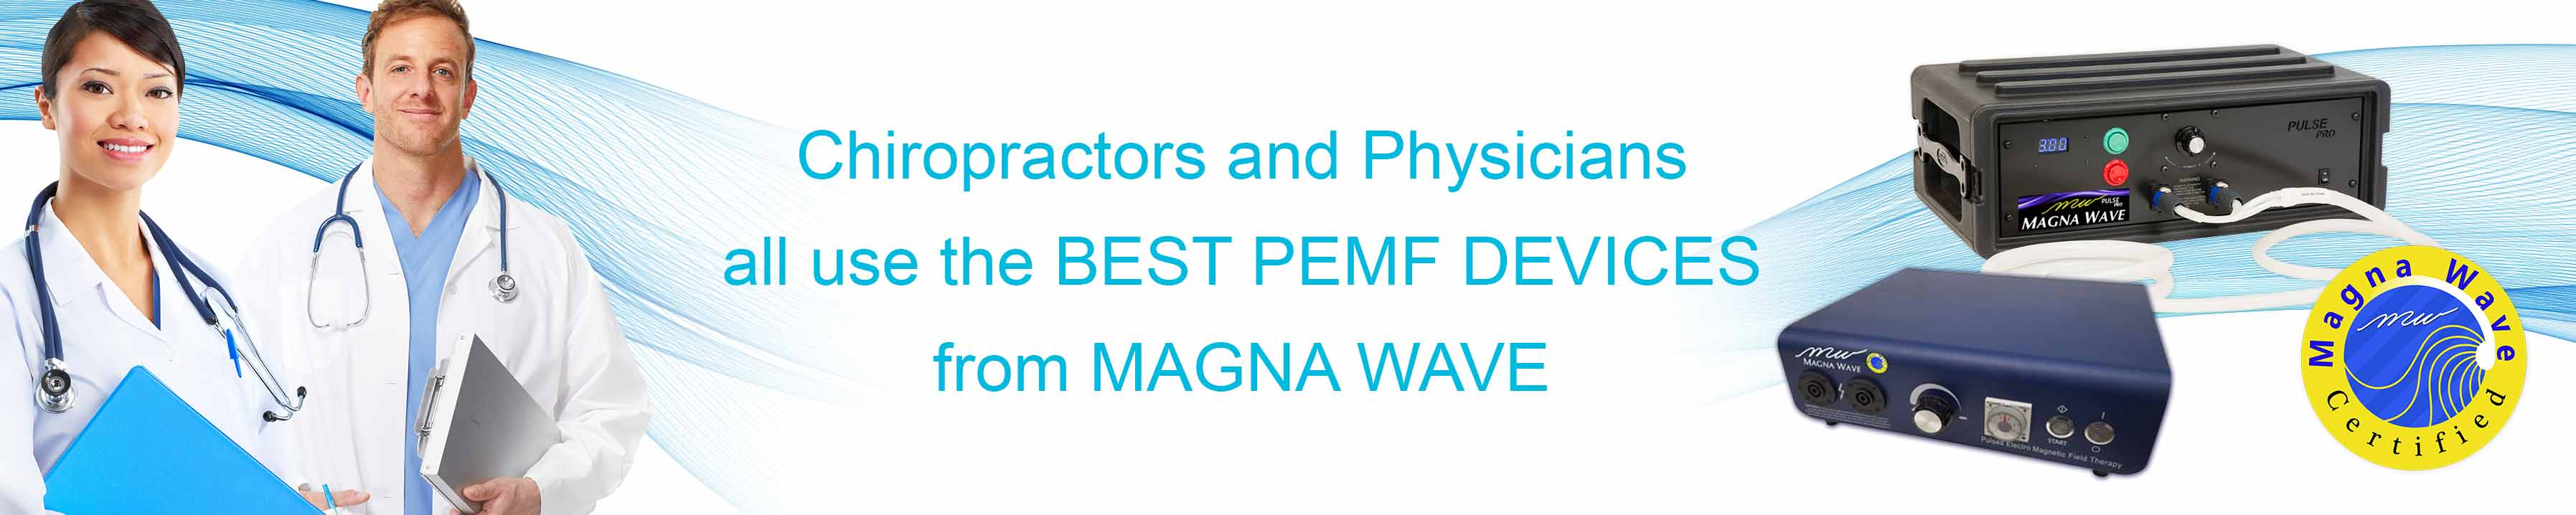 Chiropractors and Physicians all use the Best PEMF Devices from Magna Wave